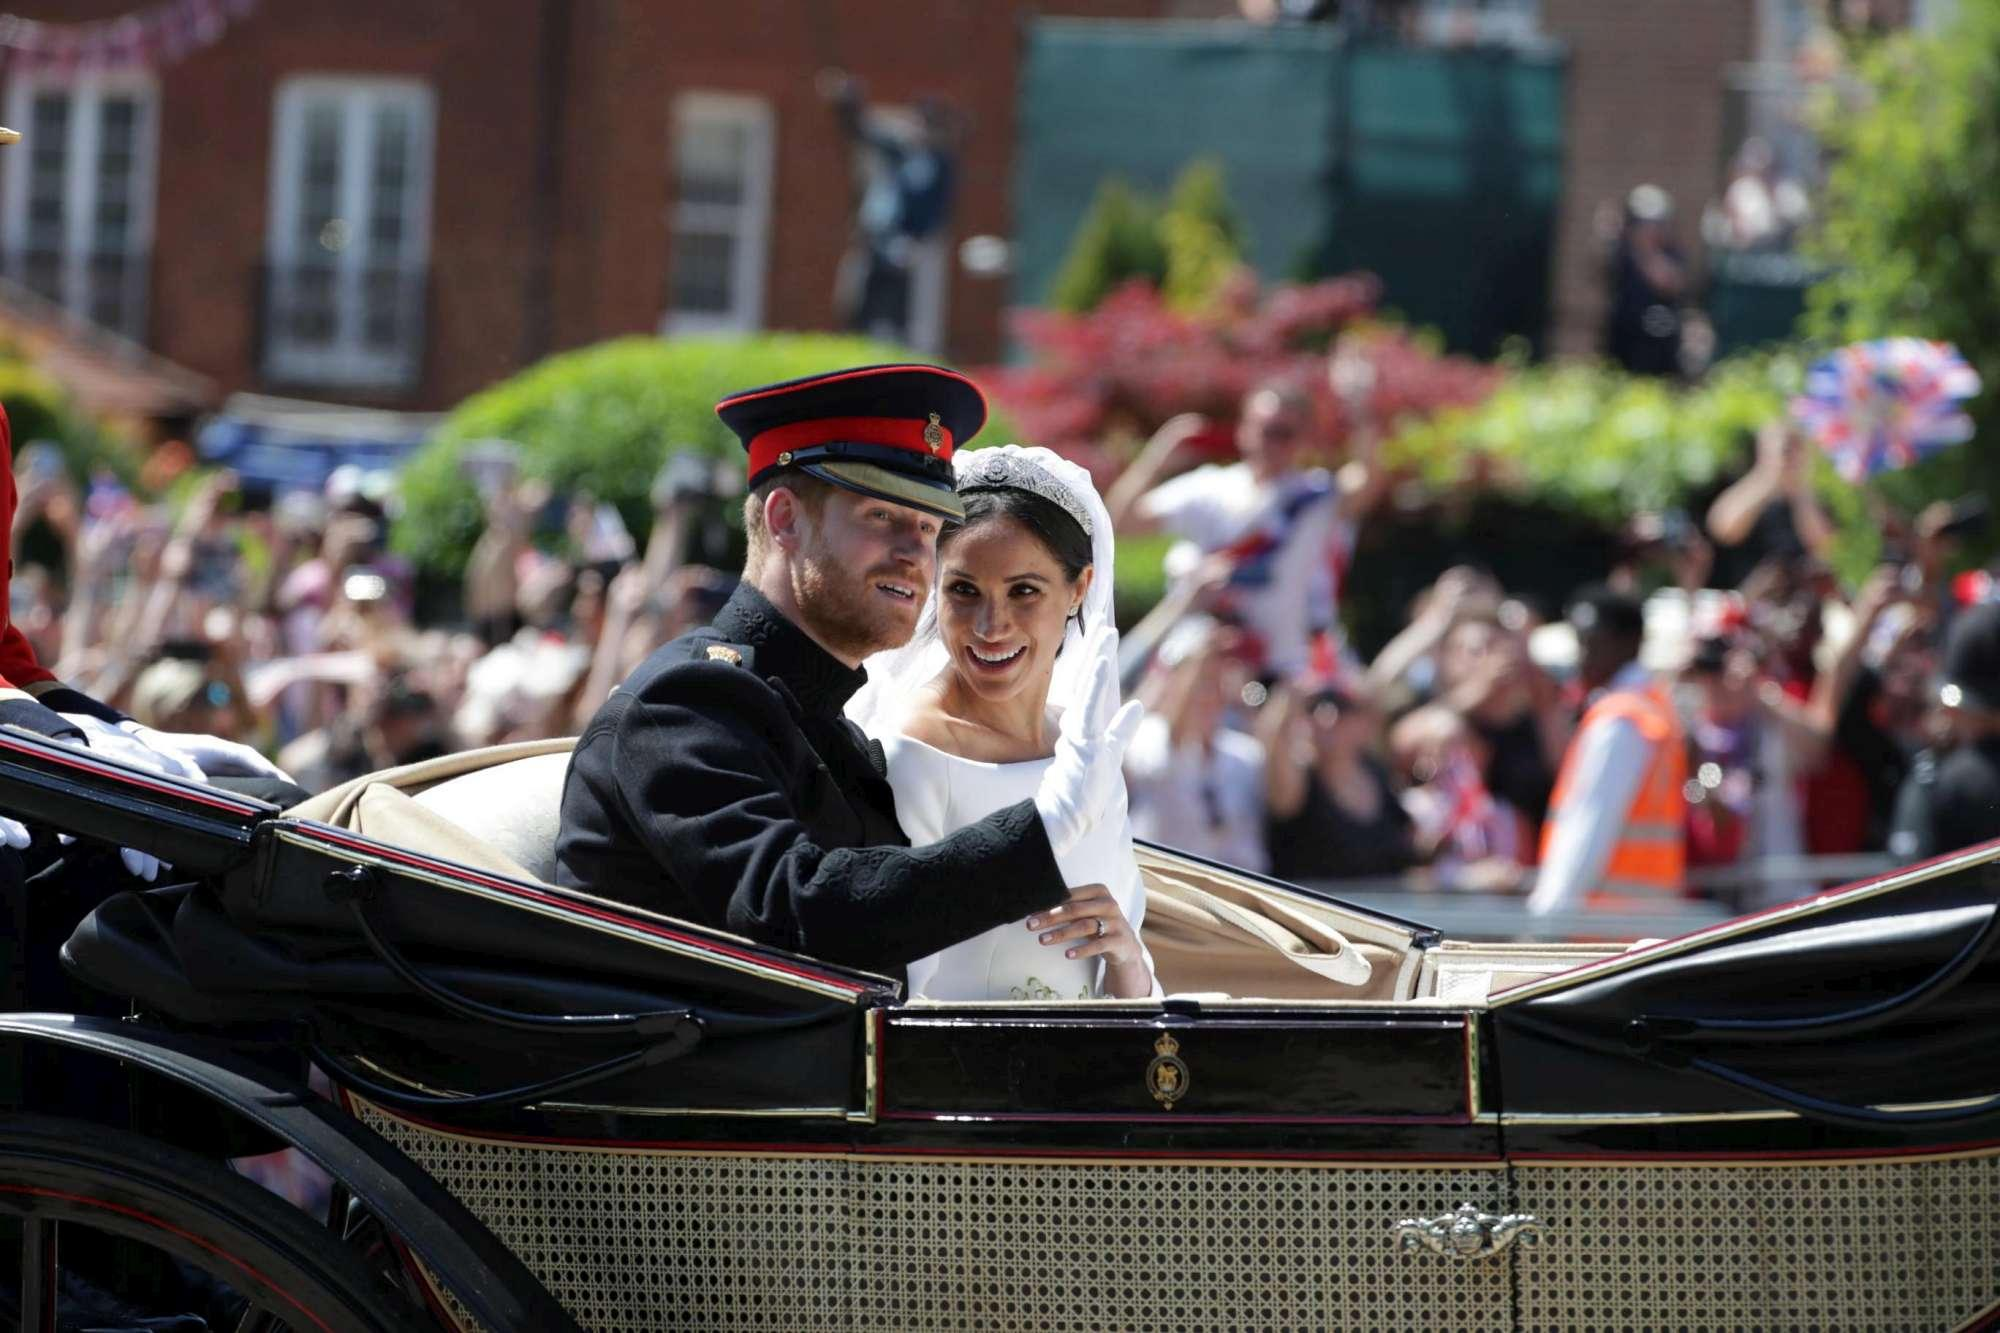 Royal wedding, oltre 100mila persone a Windsor